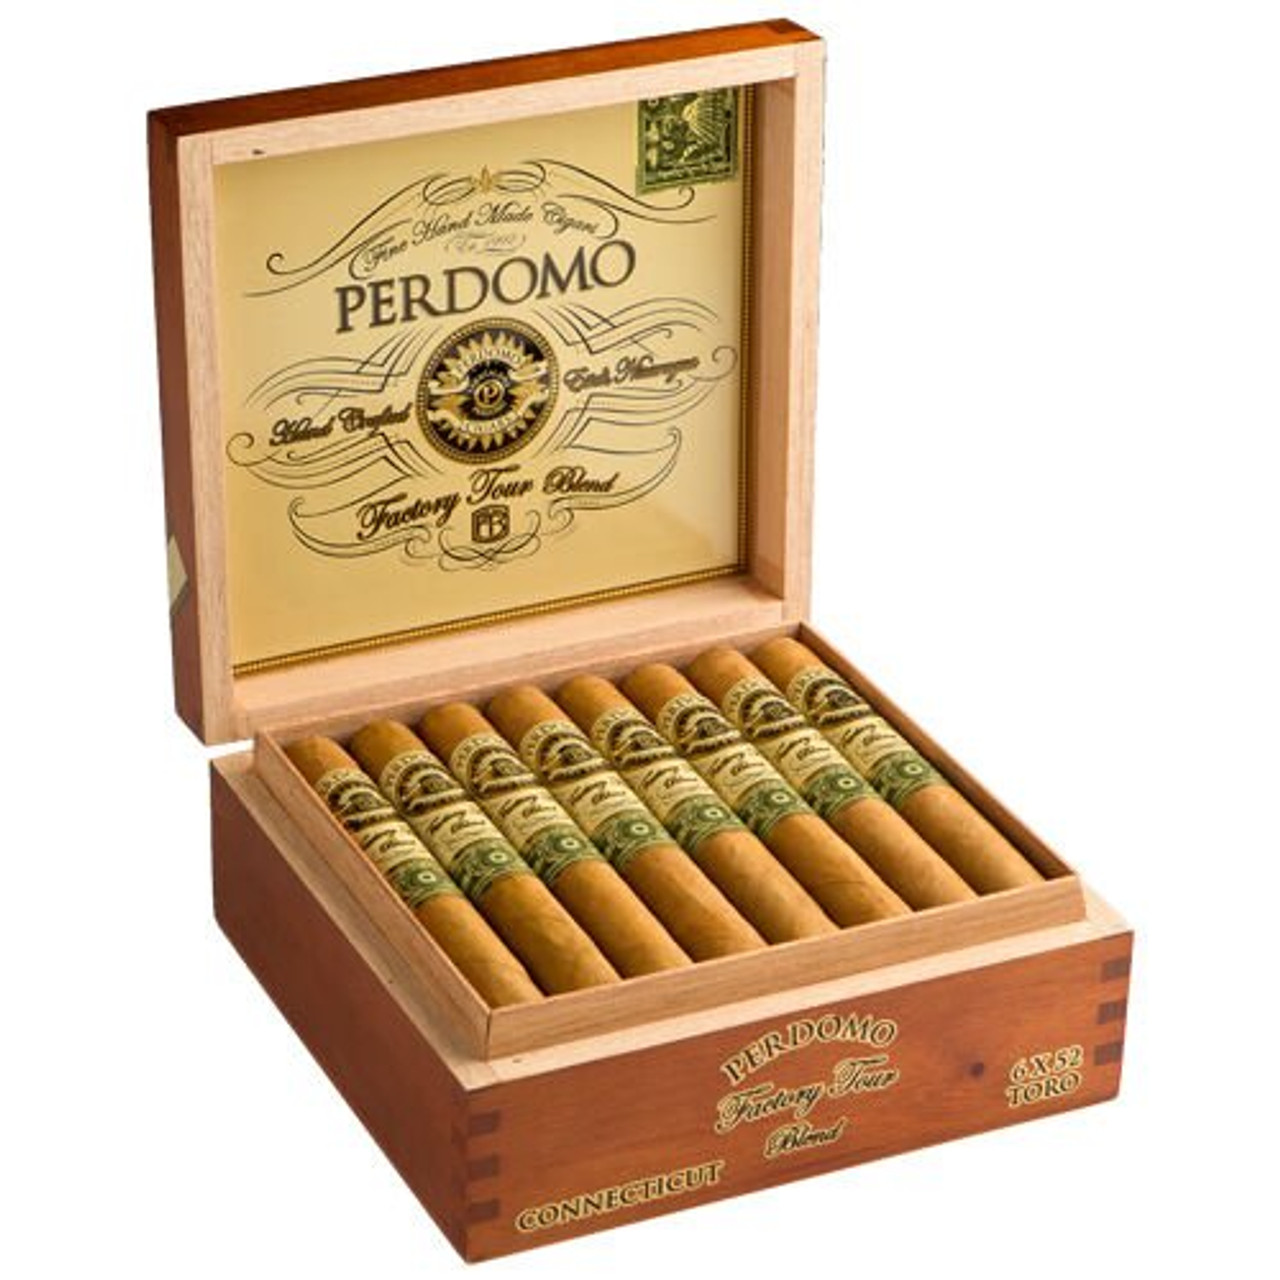 Perdomo Factory Tour Blend Connecticut Robusto Cigars - 5.0 x 52 (Box of 24)